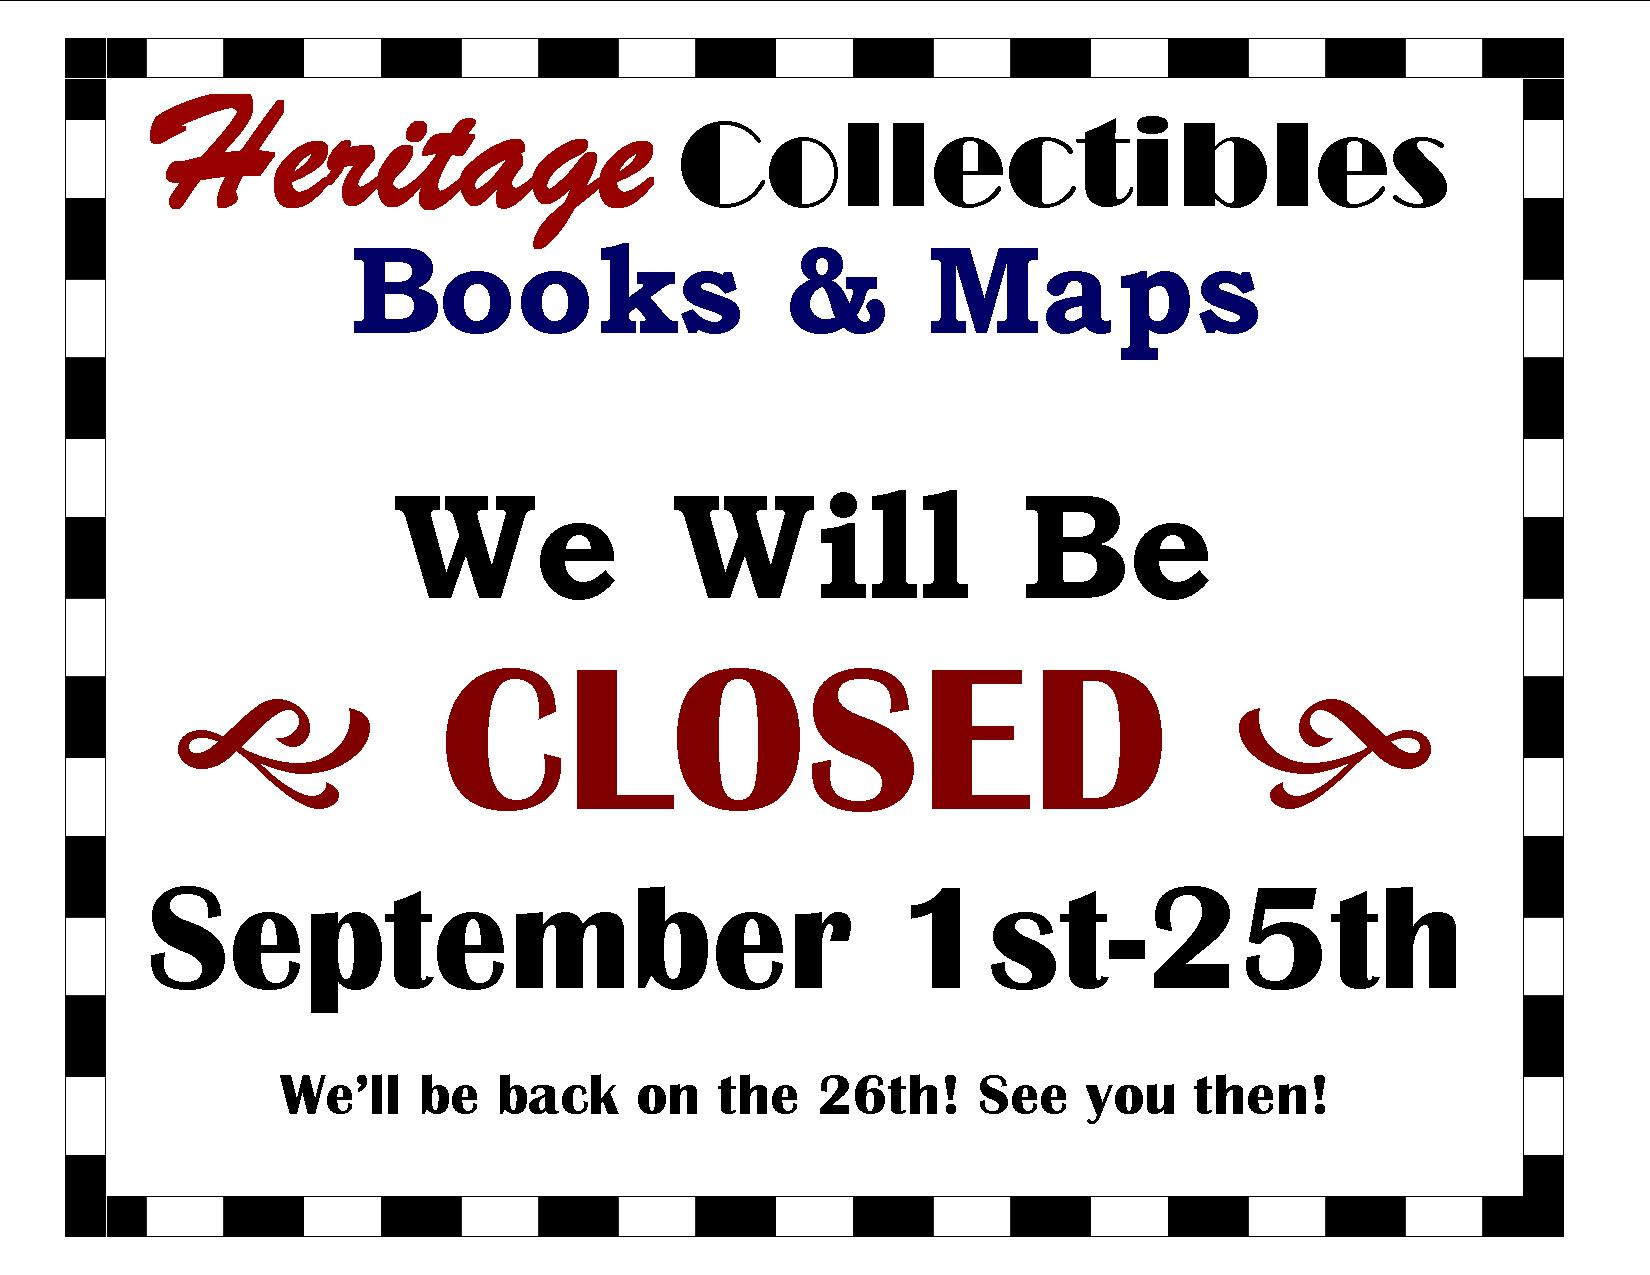 Reminder: We Are Closed Through September 25, While We Are Visiting Our New Grandson!